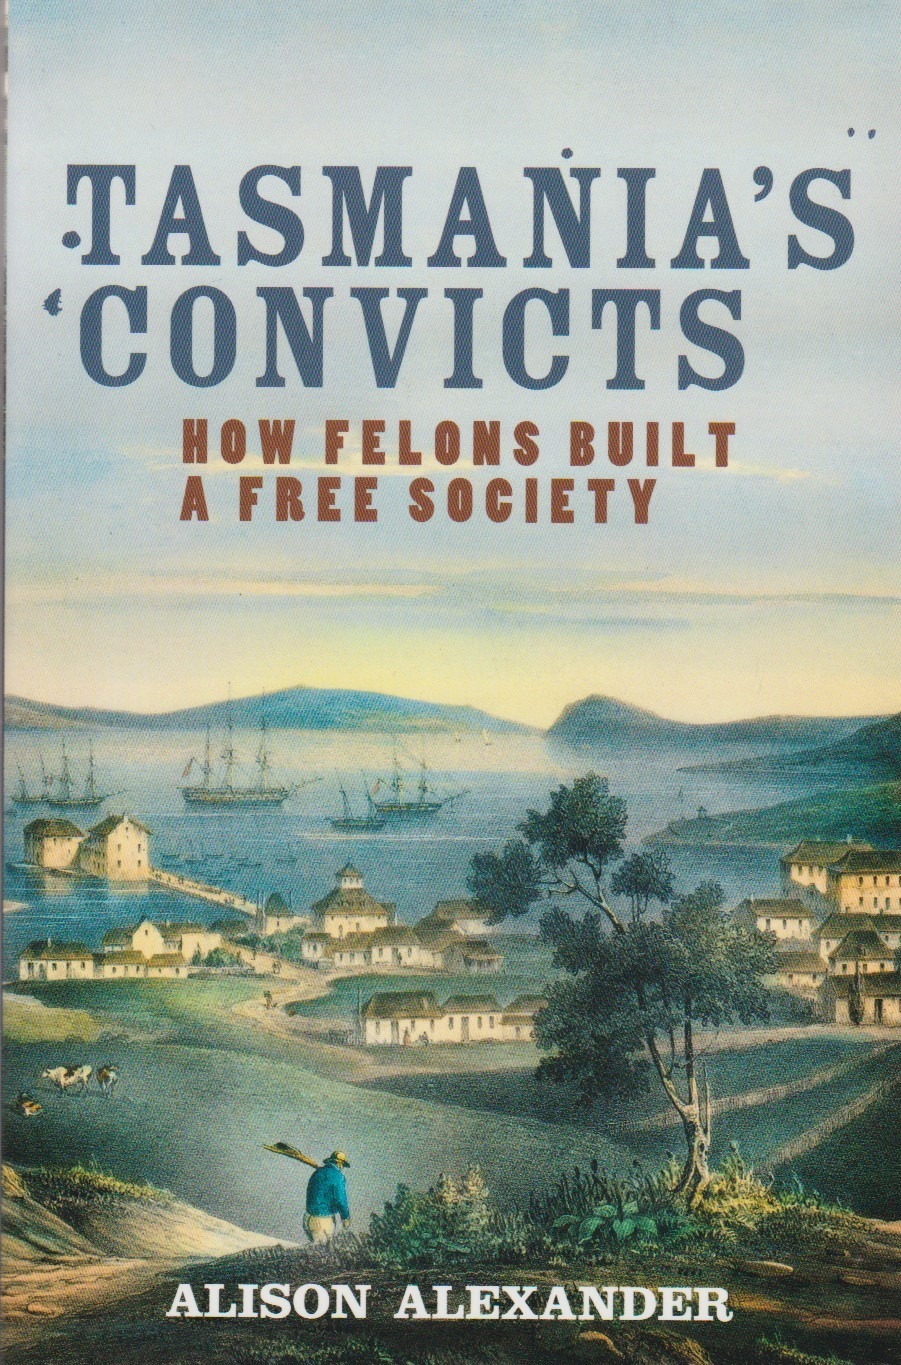 Tasmania's Convicts - how felons built a free society